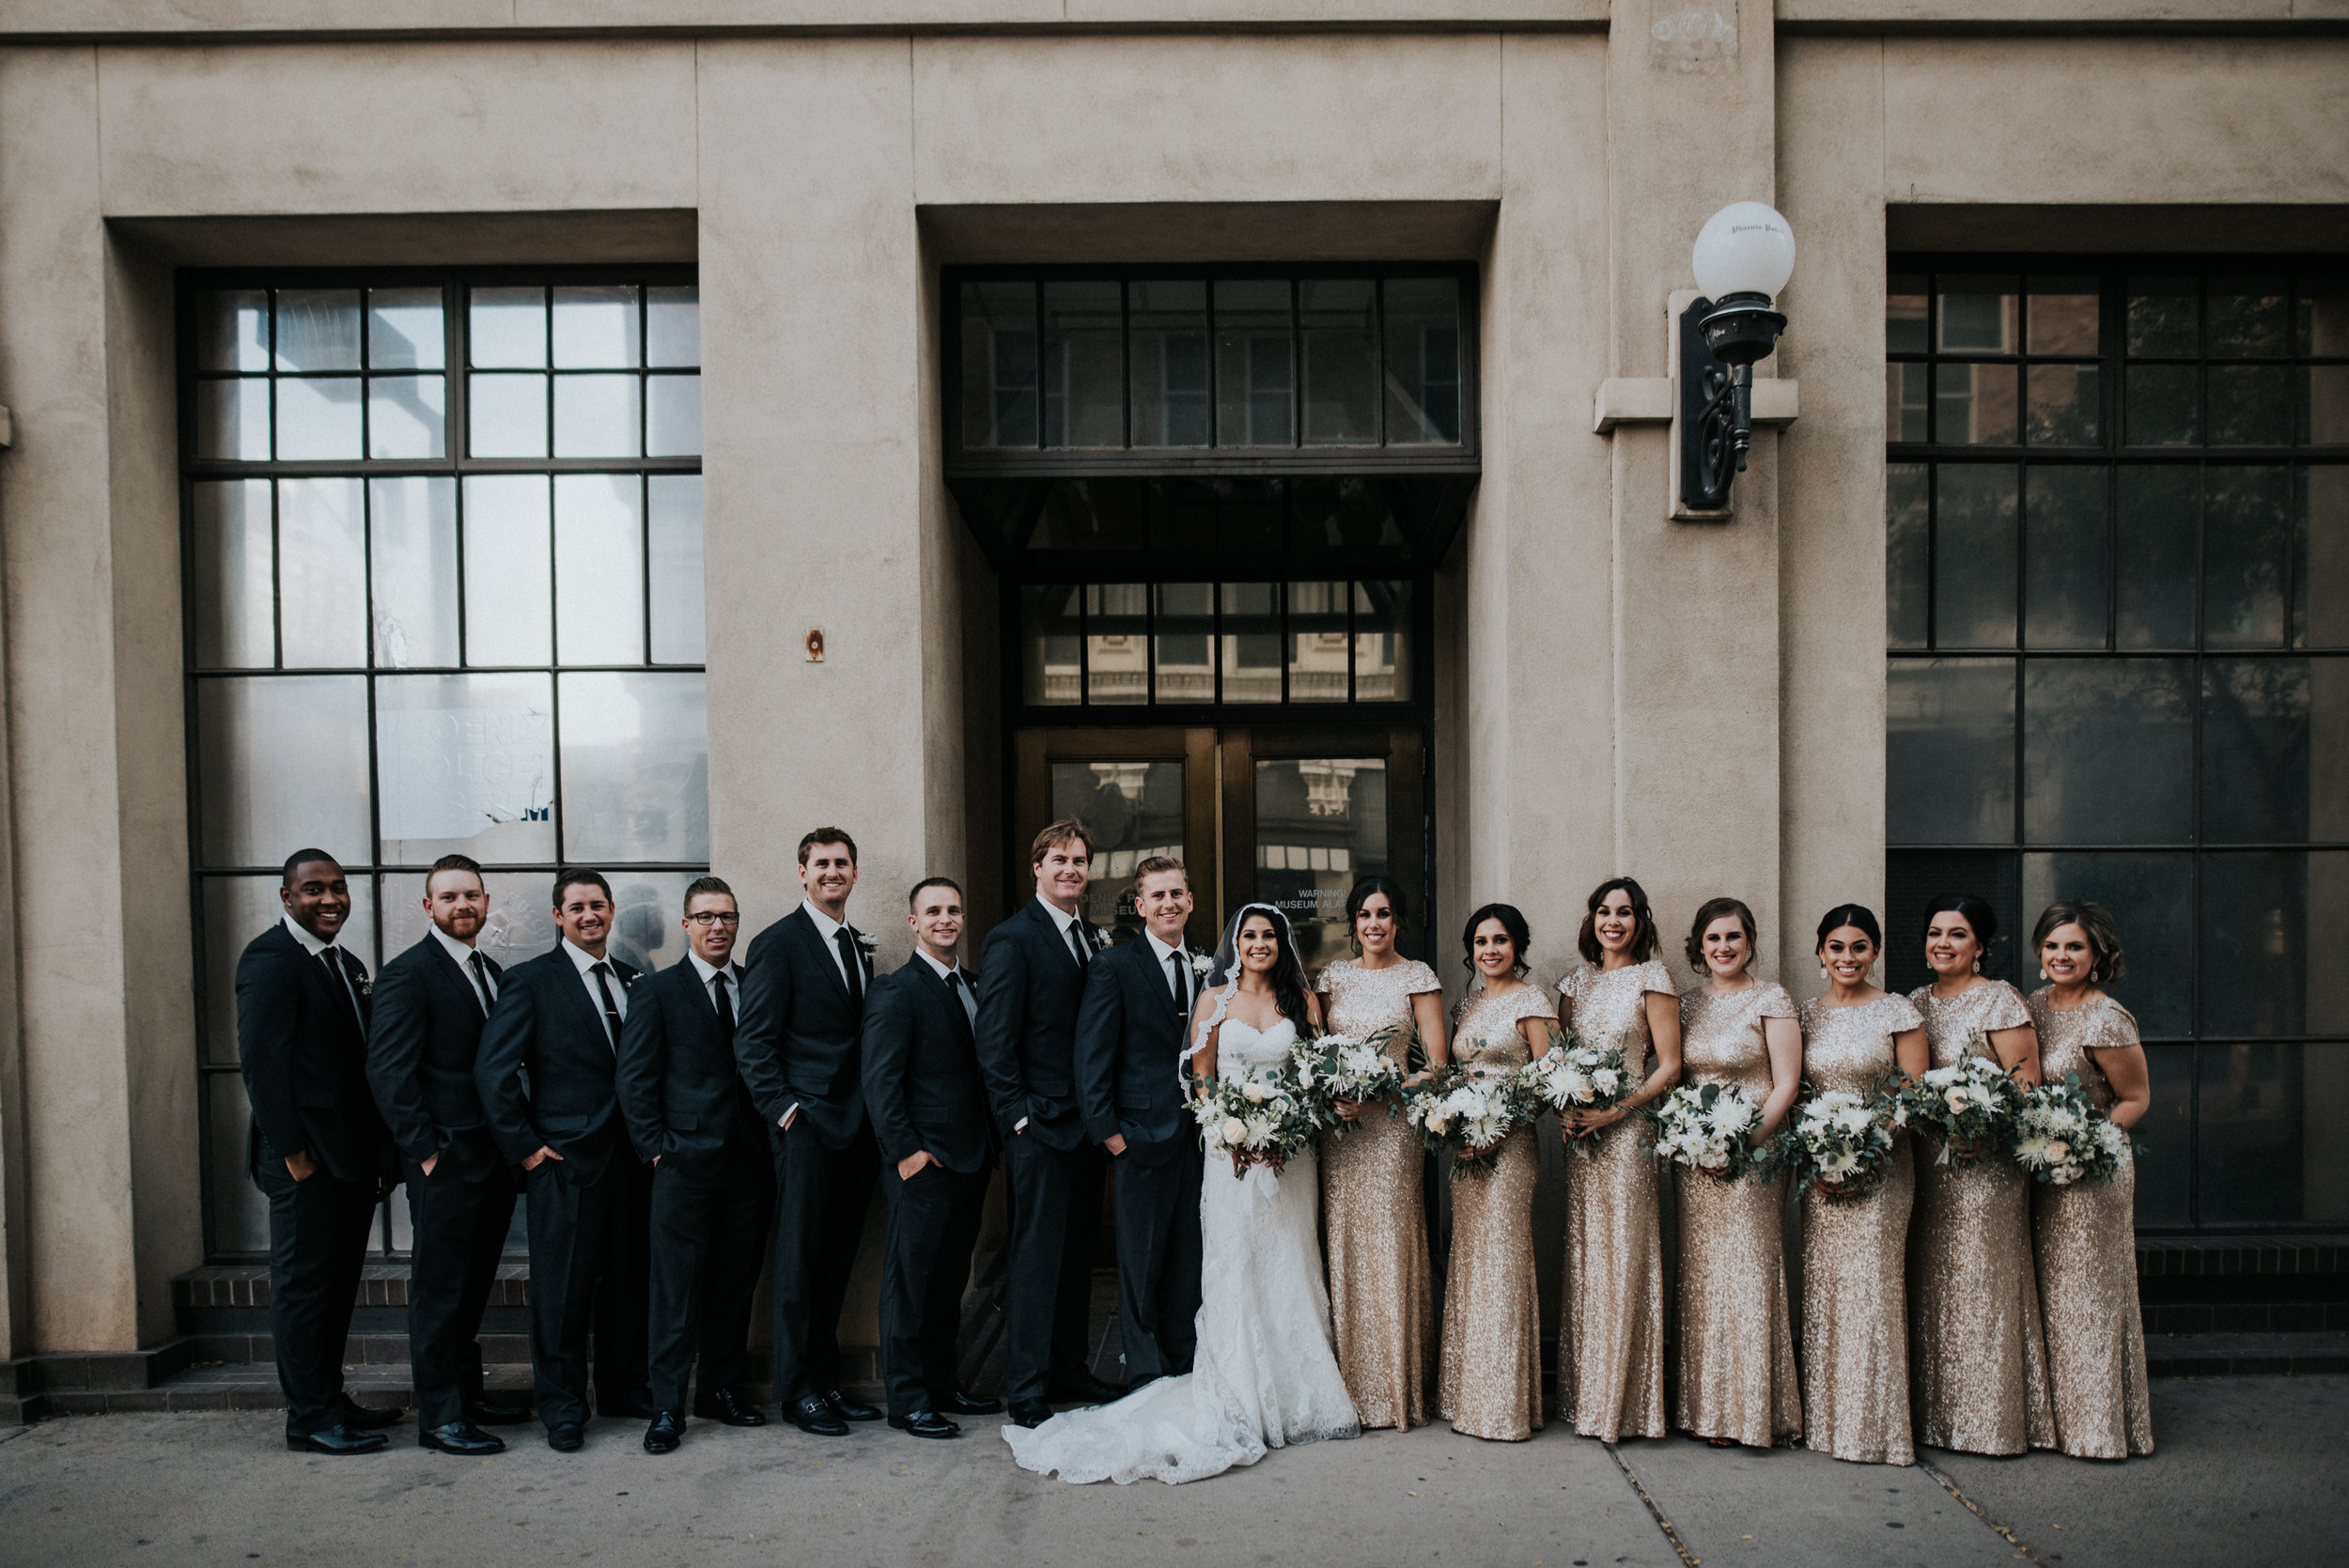 Downtown Phoenix Moody Glam Wedding - Bridal Party